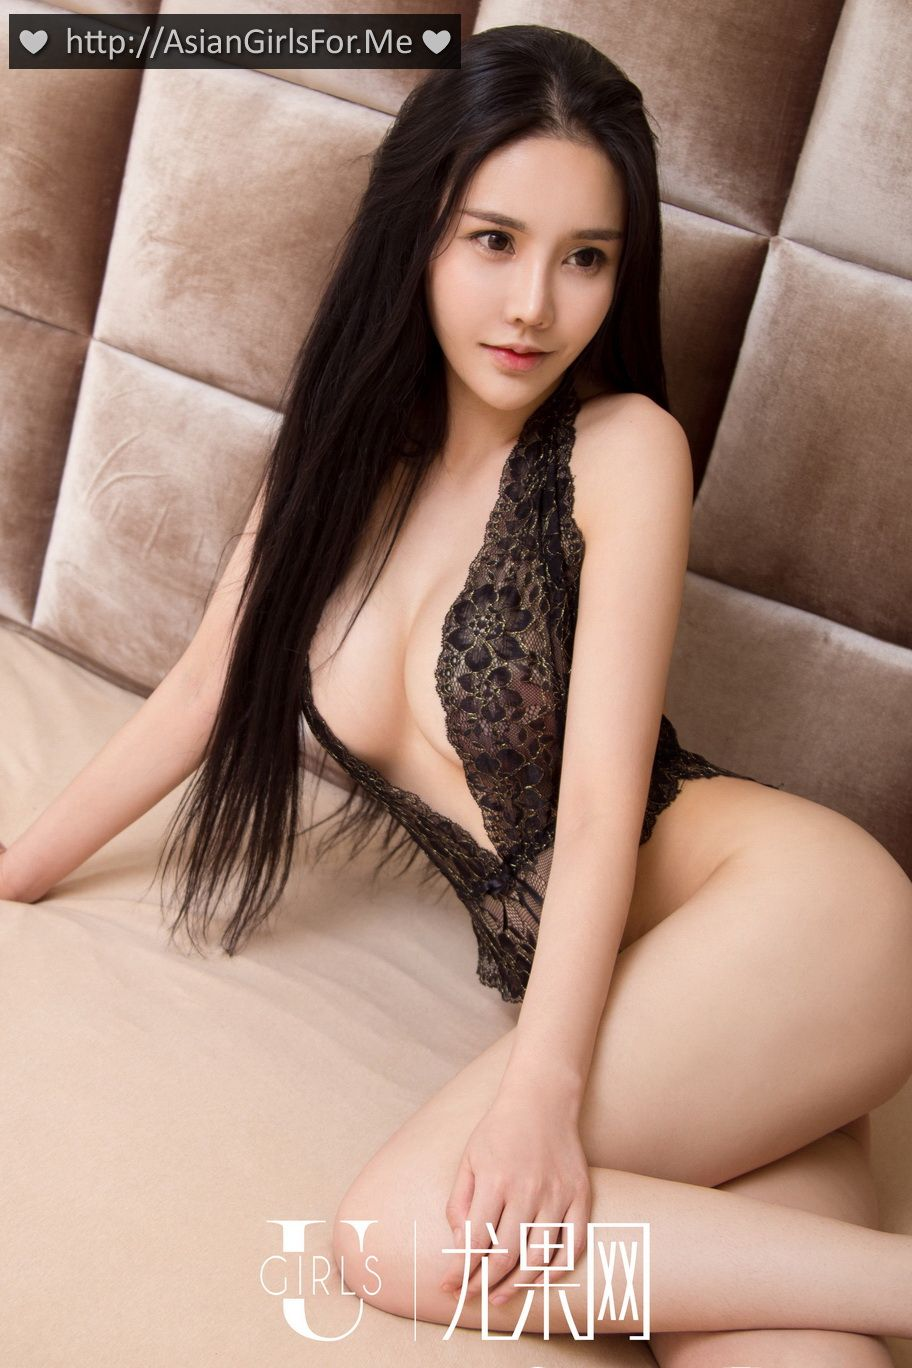 Sexy Asian Teens Our Site 106